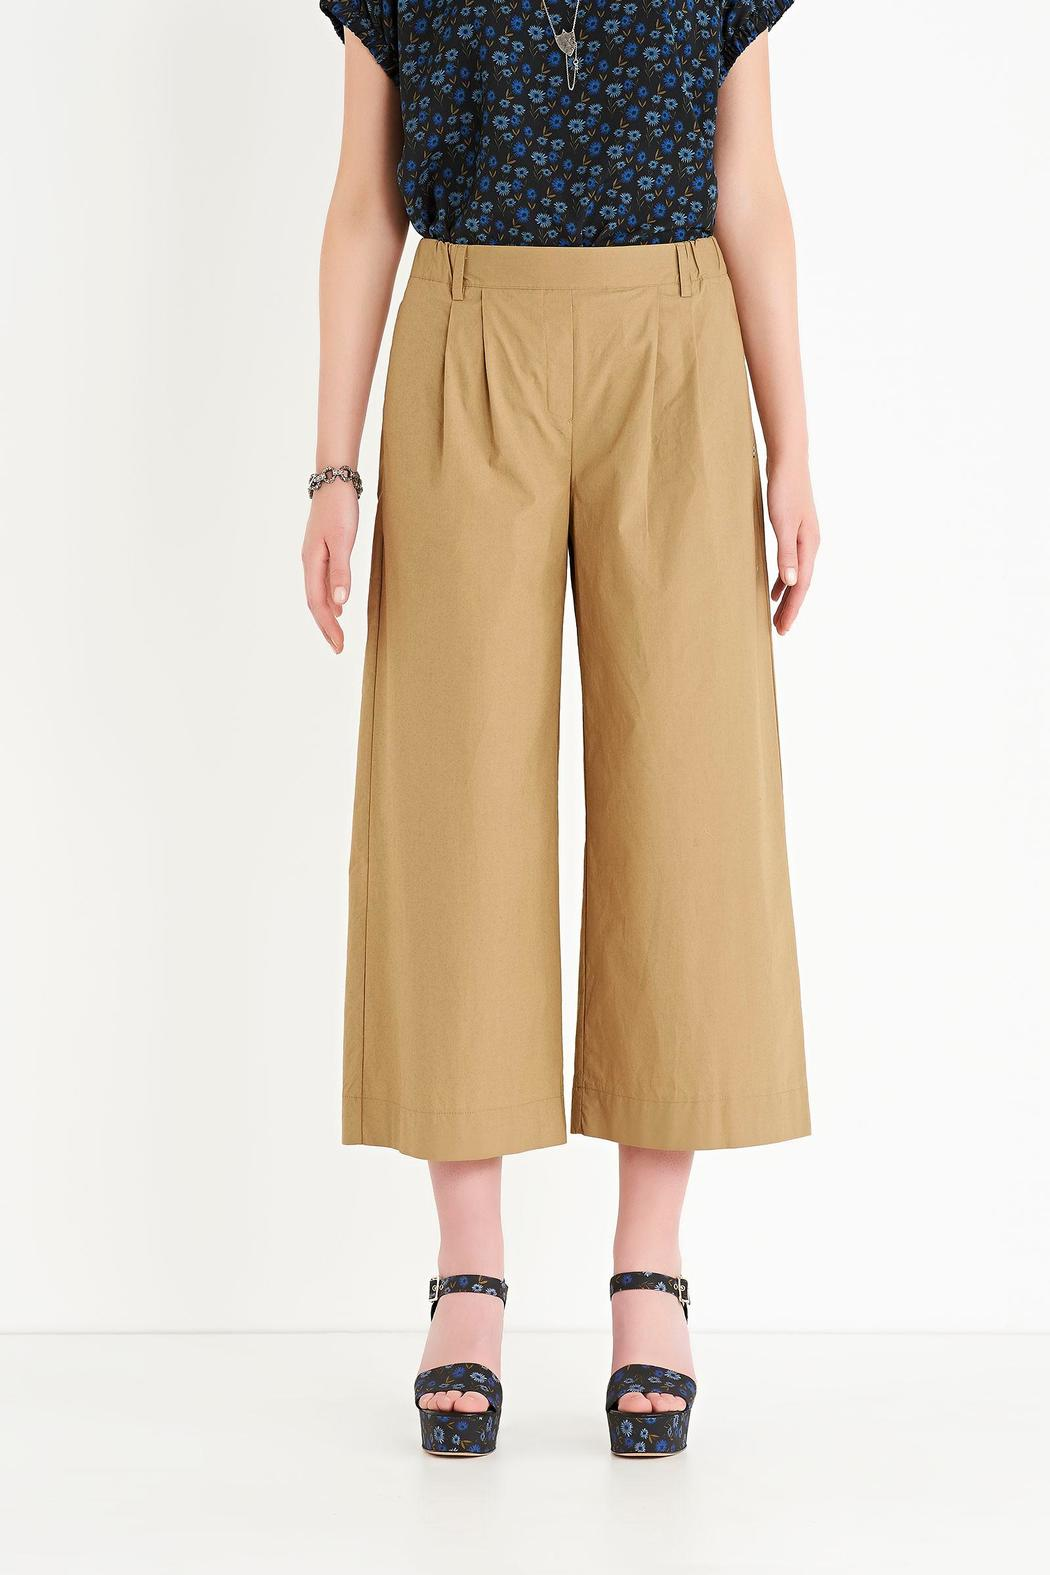 Ottod'ame Cropped Poplin Pant - Main Image